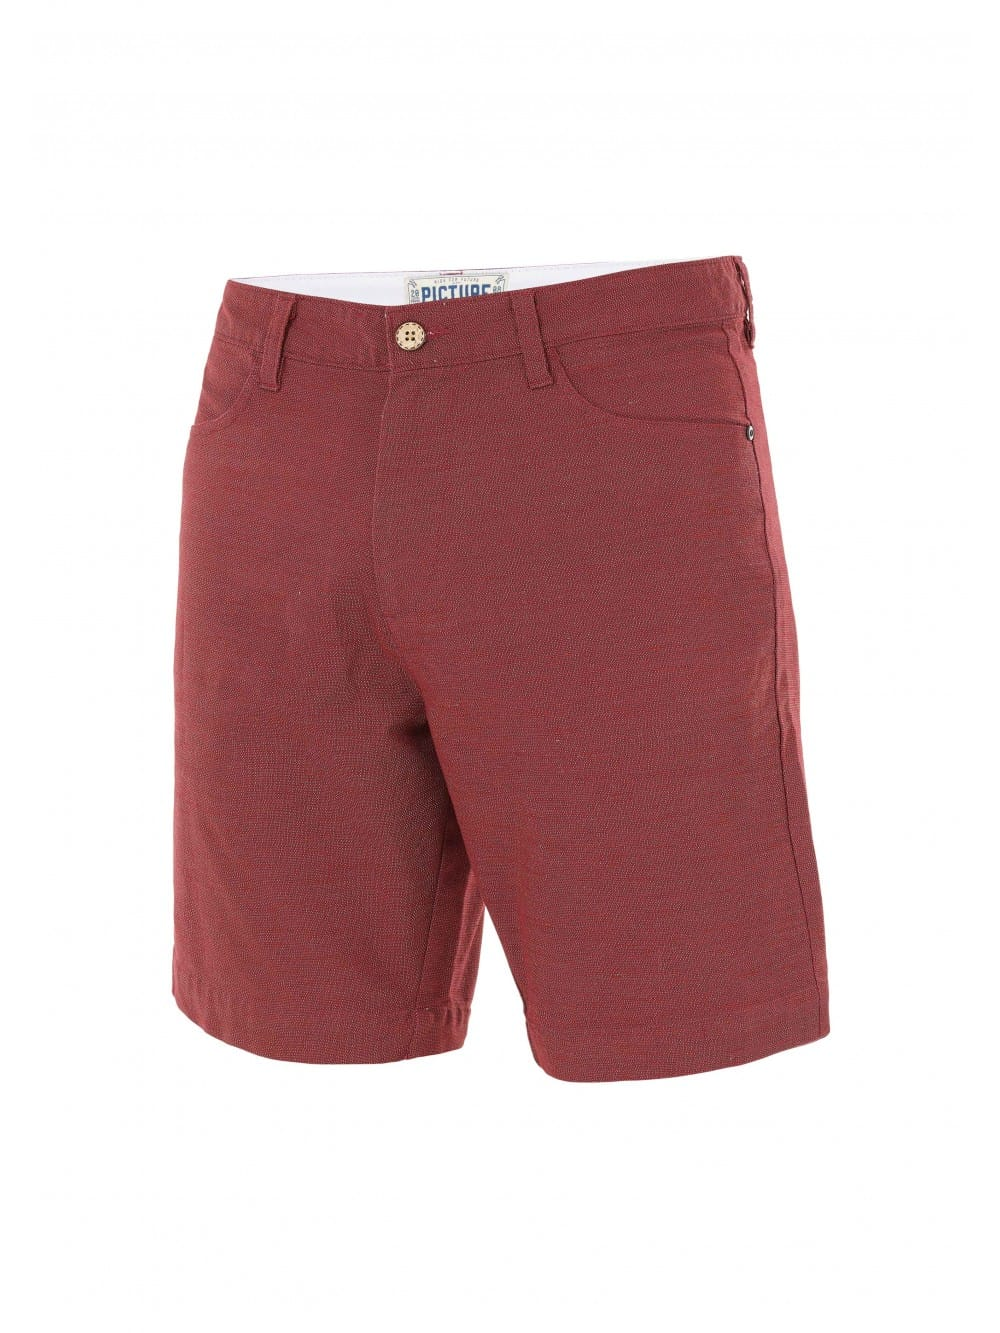 Recycled cotton shorts-Aldo